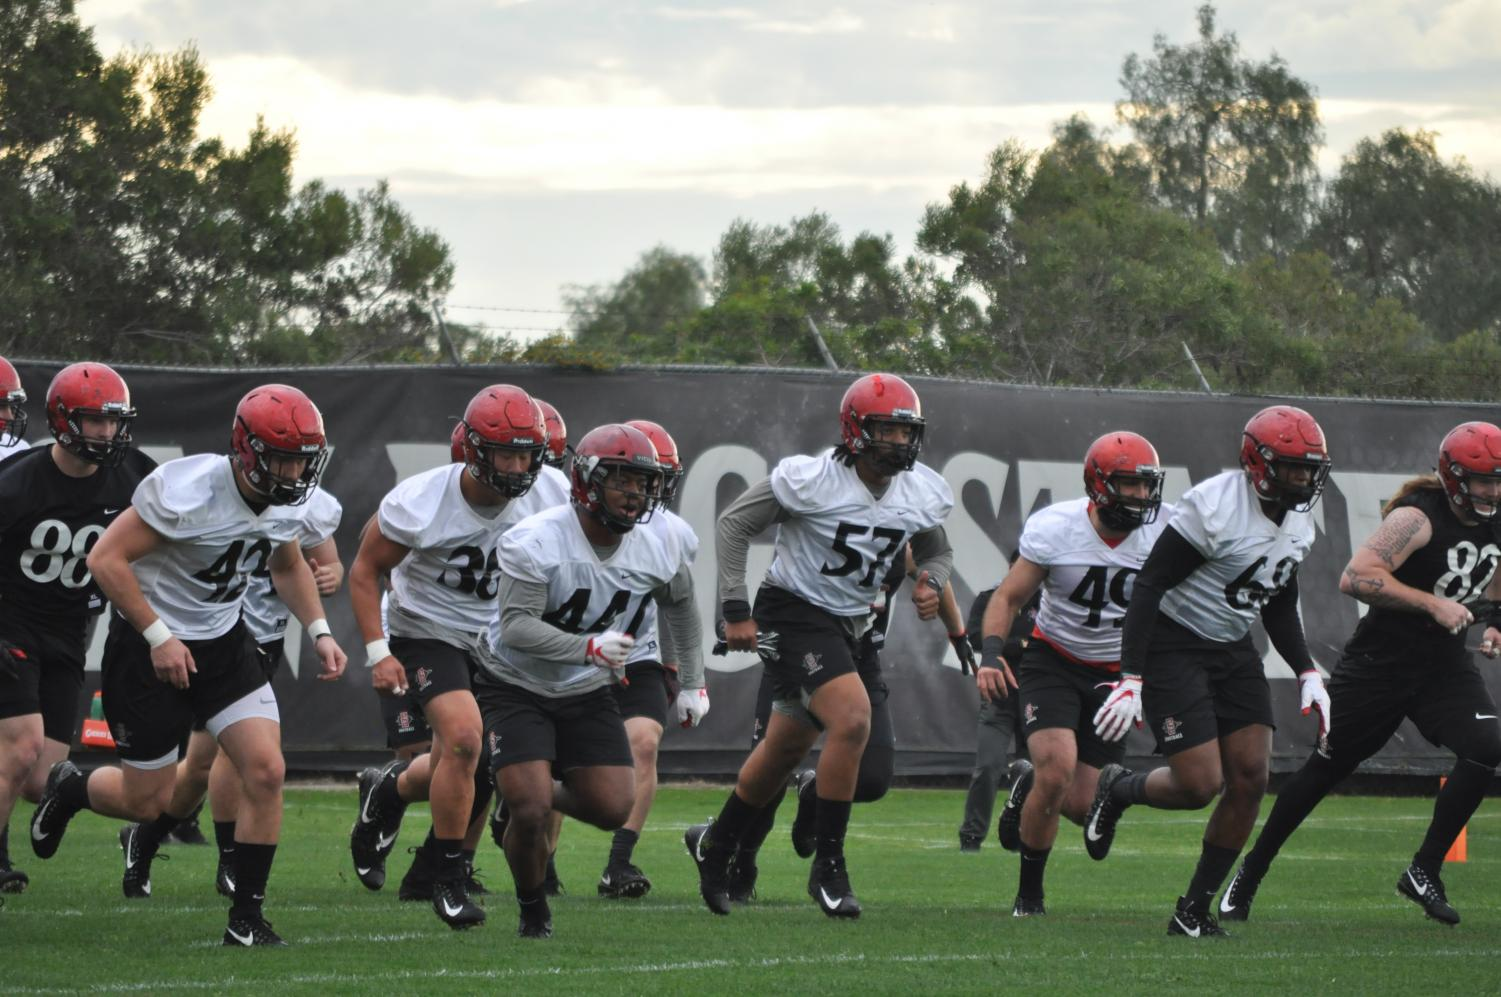 San Diego State football does sprints to warm up before a spring practice on March 5 at the SDSU Practice Field.